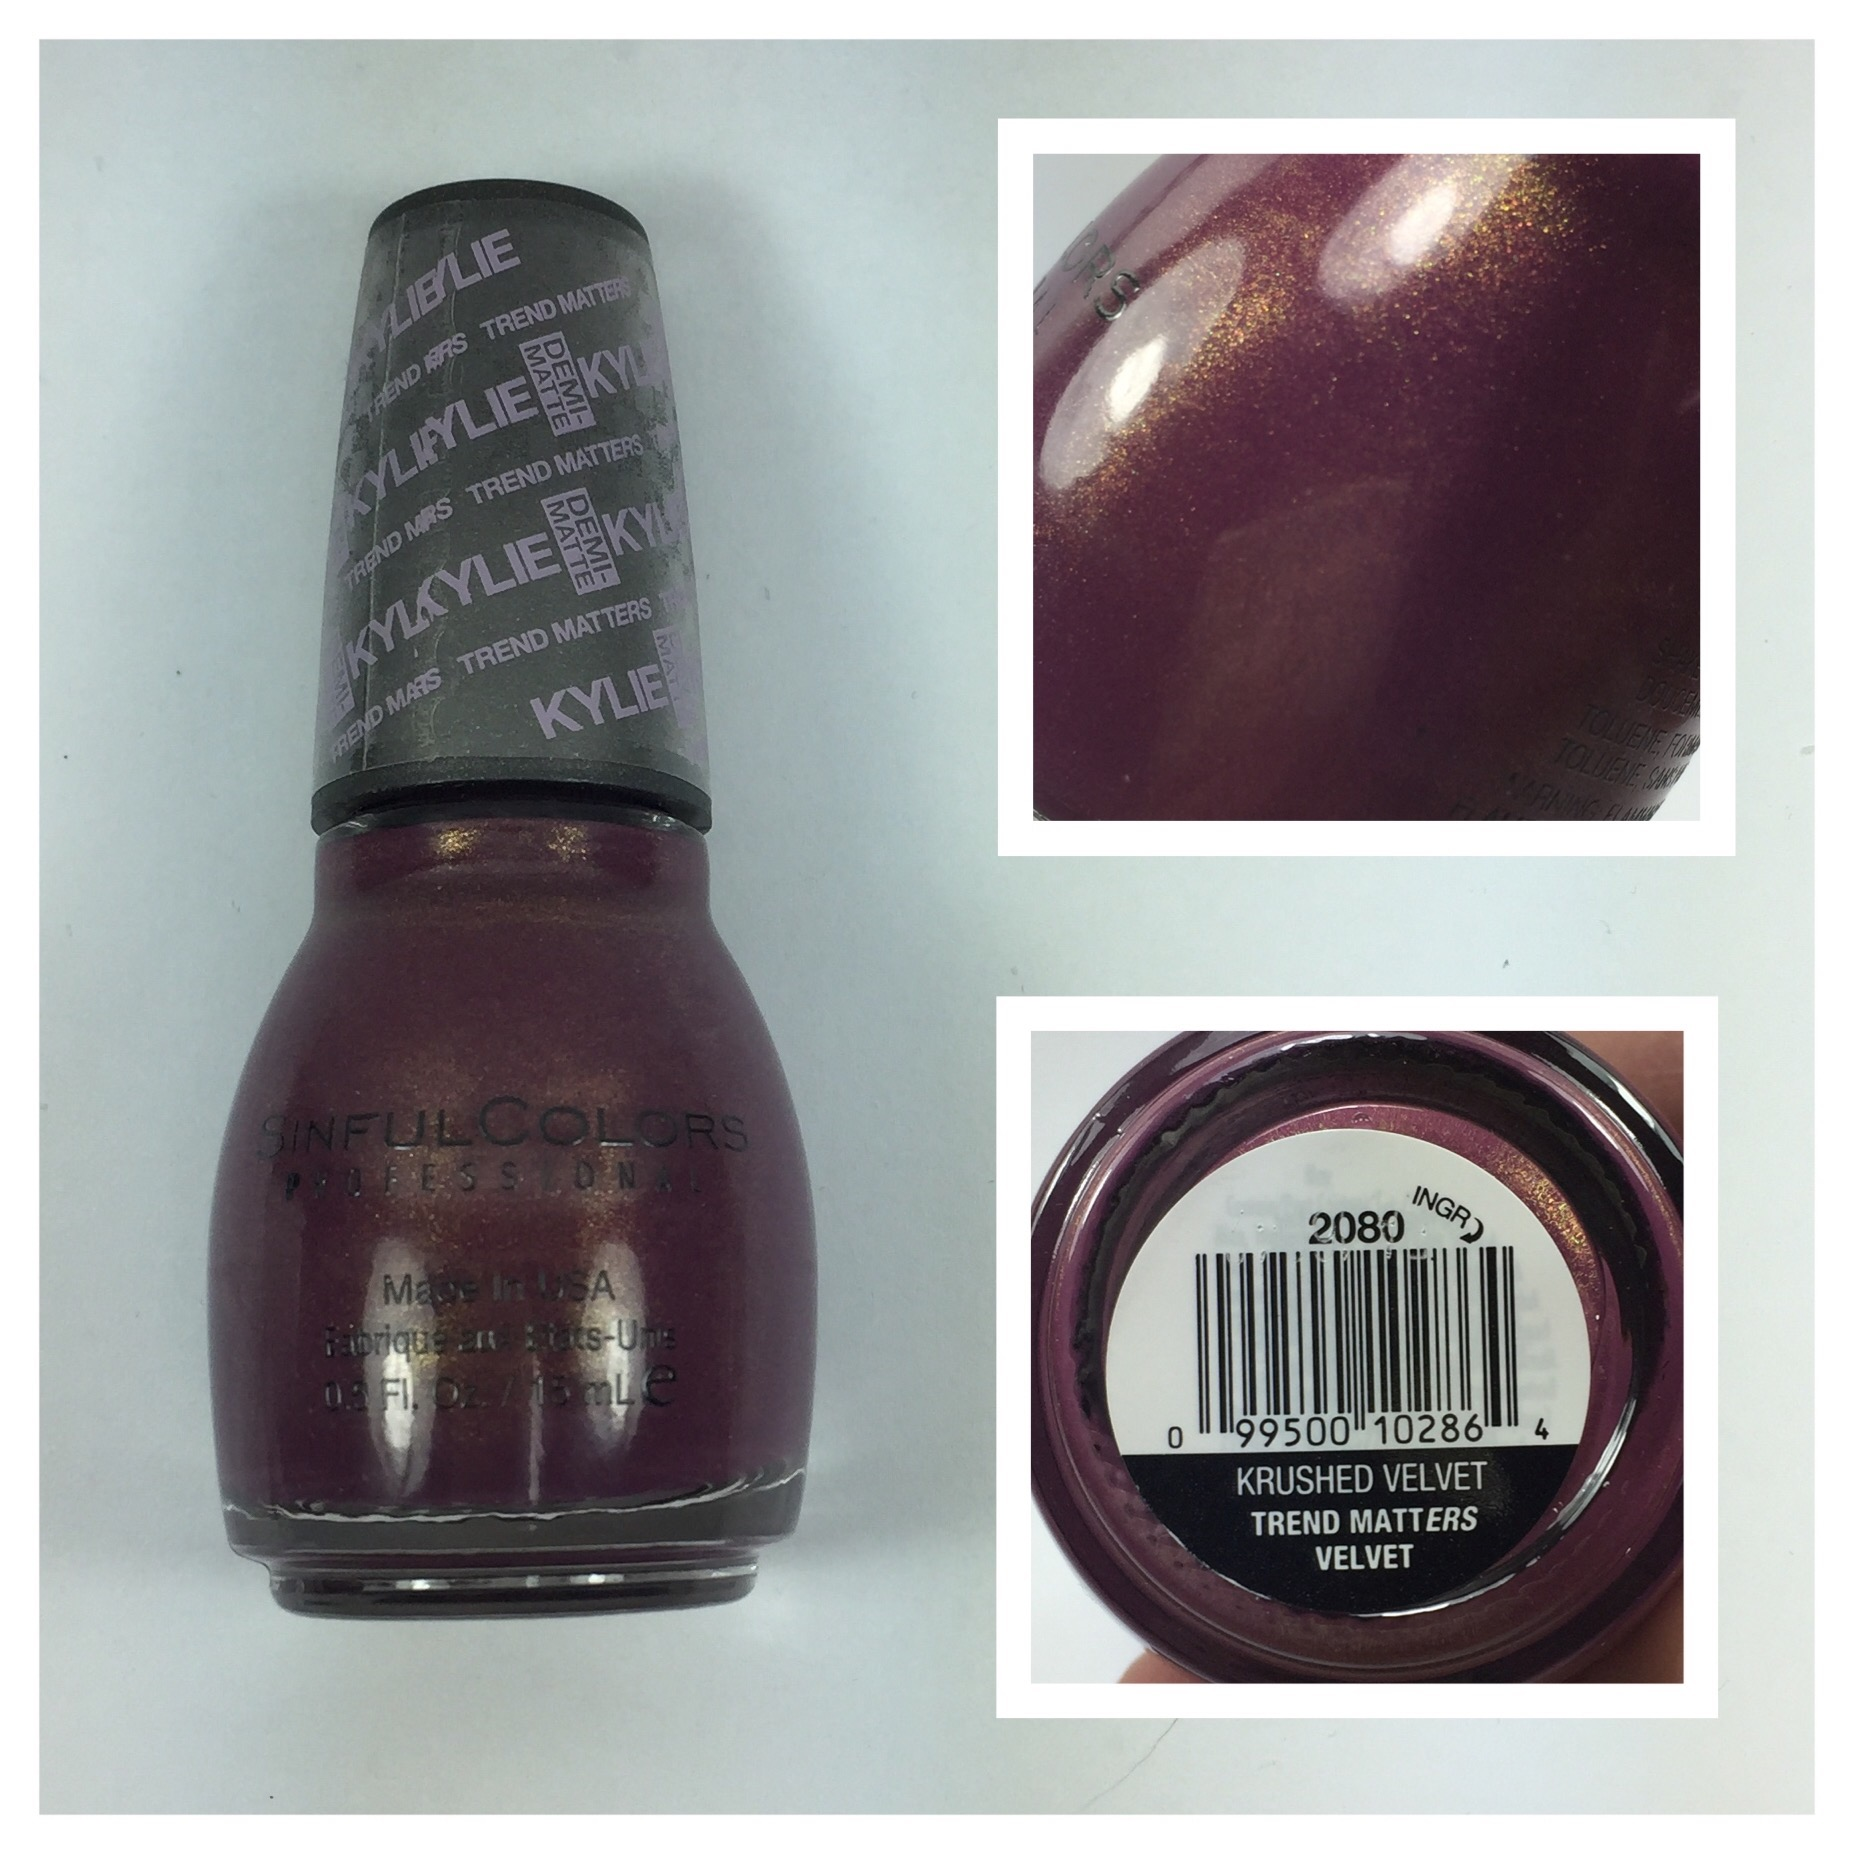 Sinful Colors Kylie Jenner Trend Matters Mauve On, Karma and Krushed ...